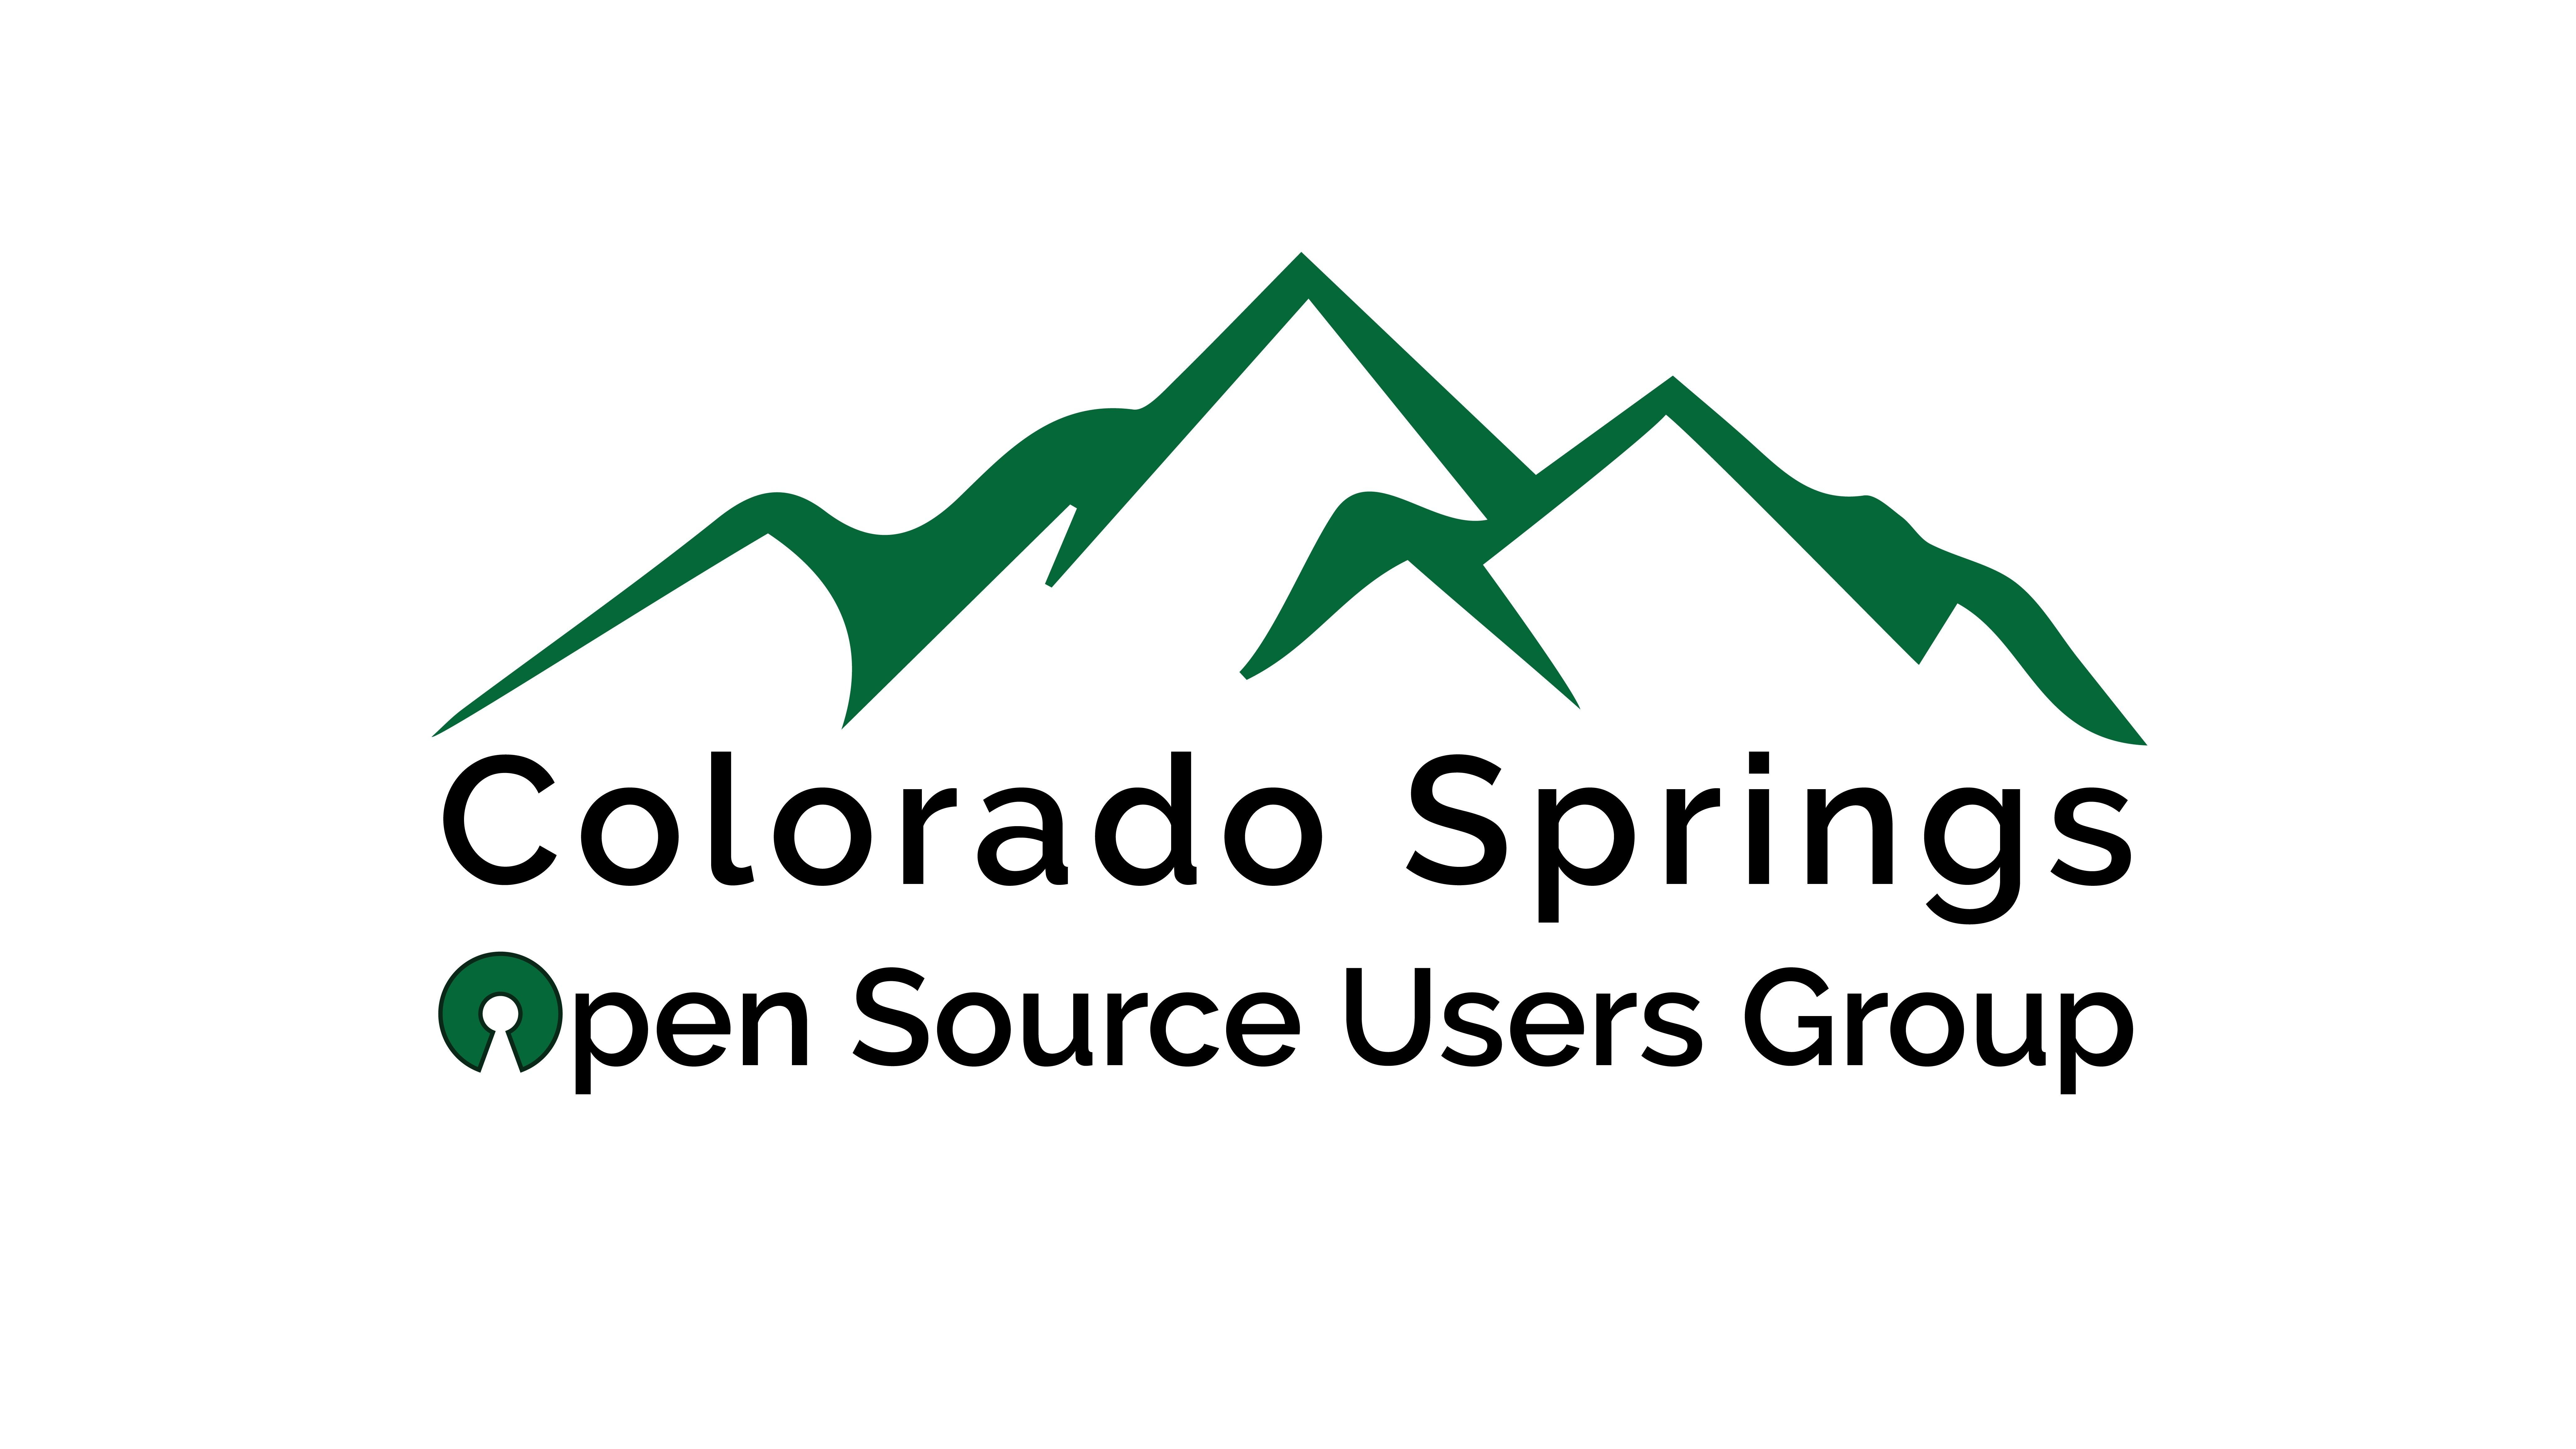 Colorado Springs Open Source Users Group